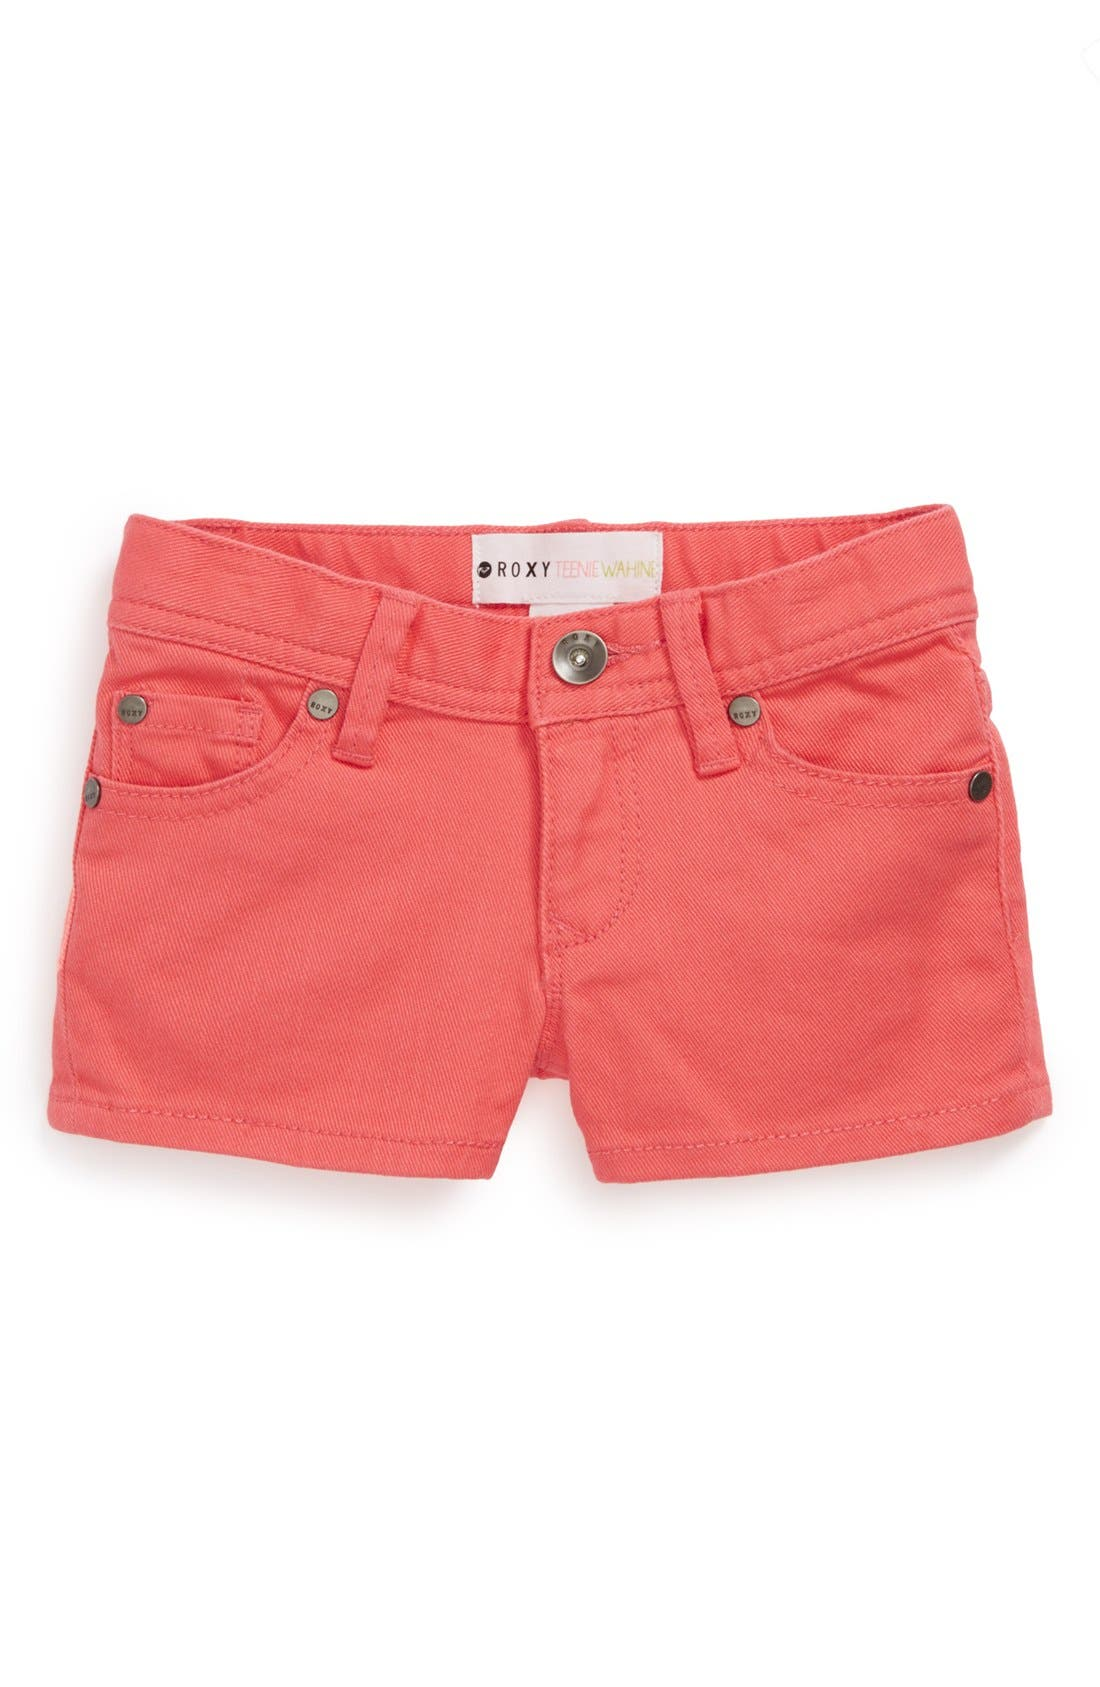 Alternate Image 2  - Roxy 'Lisy' Shorts (Toddler Girls)